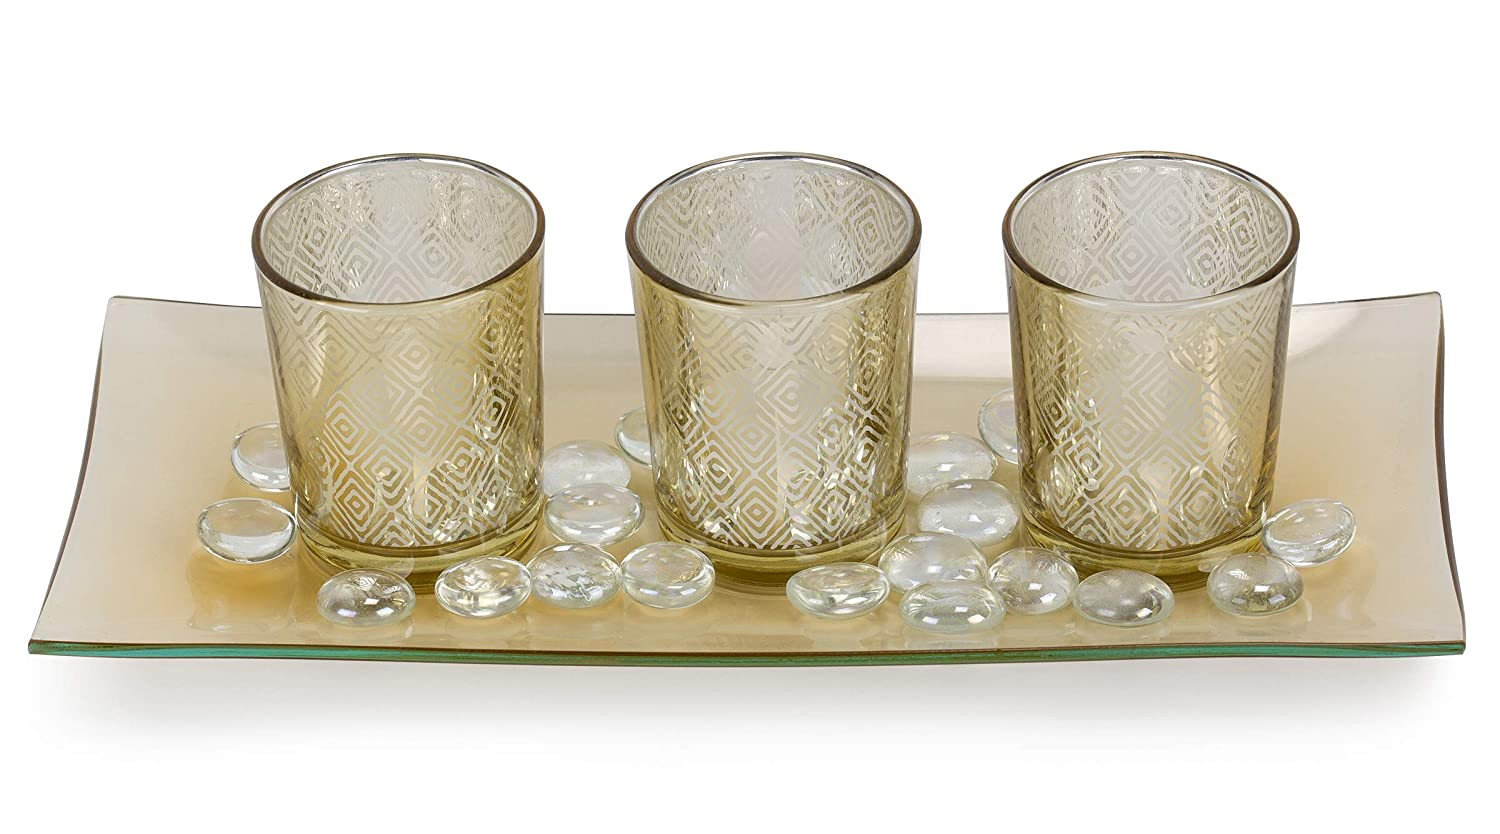 Ornamental Glass Stones /& Glass Tray DHE-735 Dawhud Direct Decorative Glass Candle Holder Set with LED Tealights